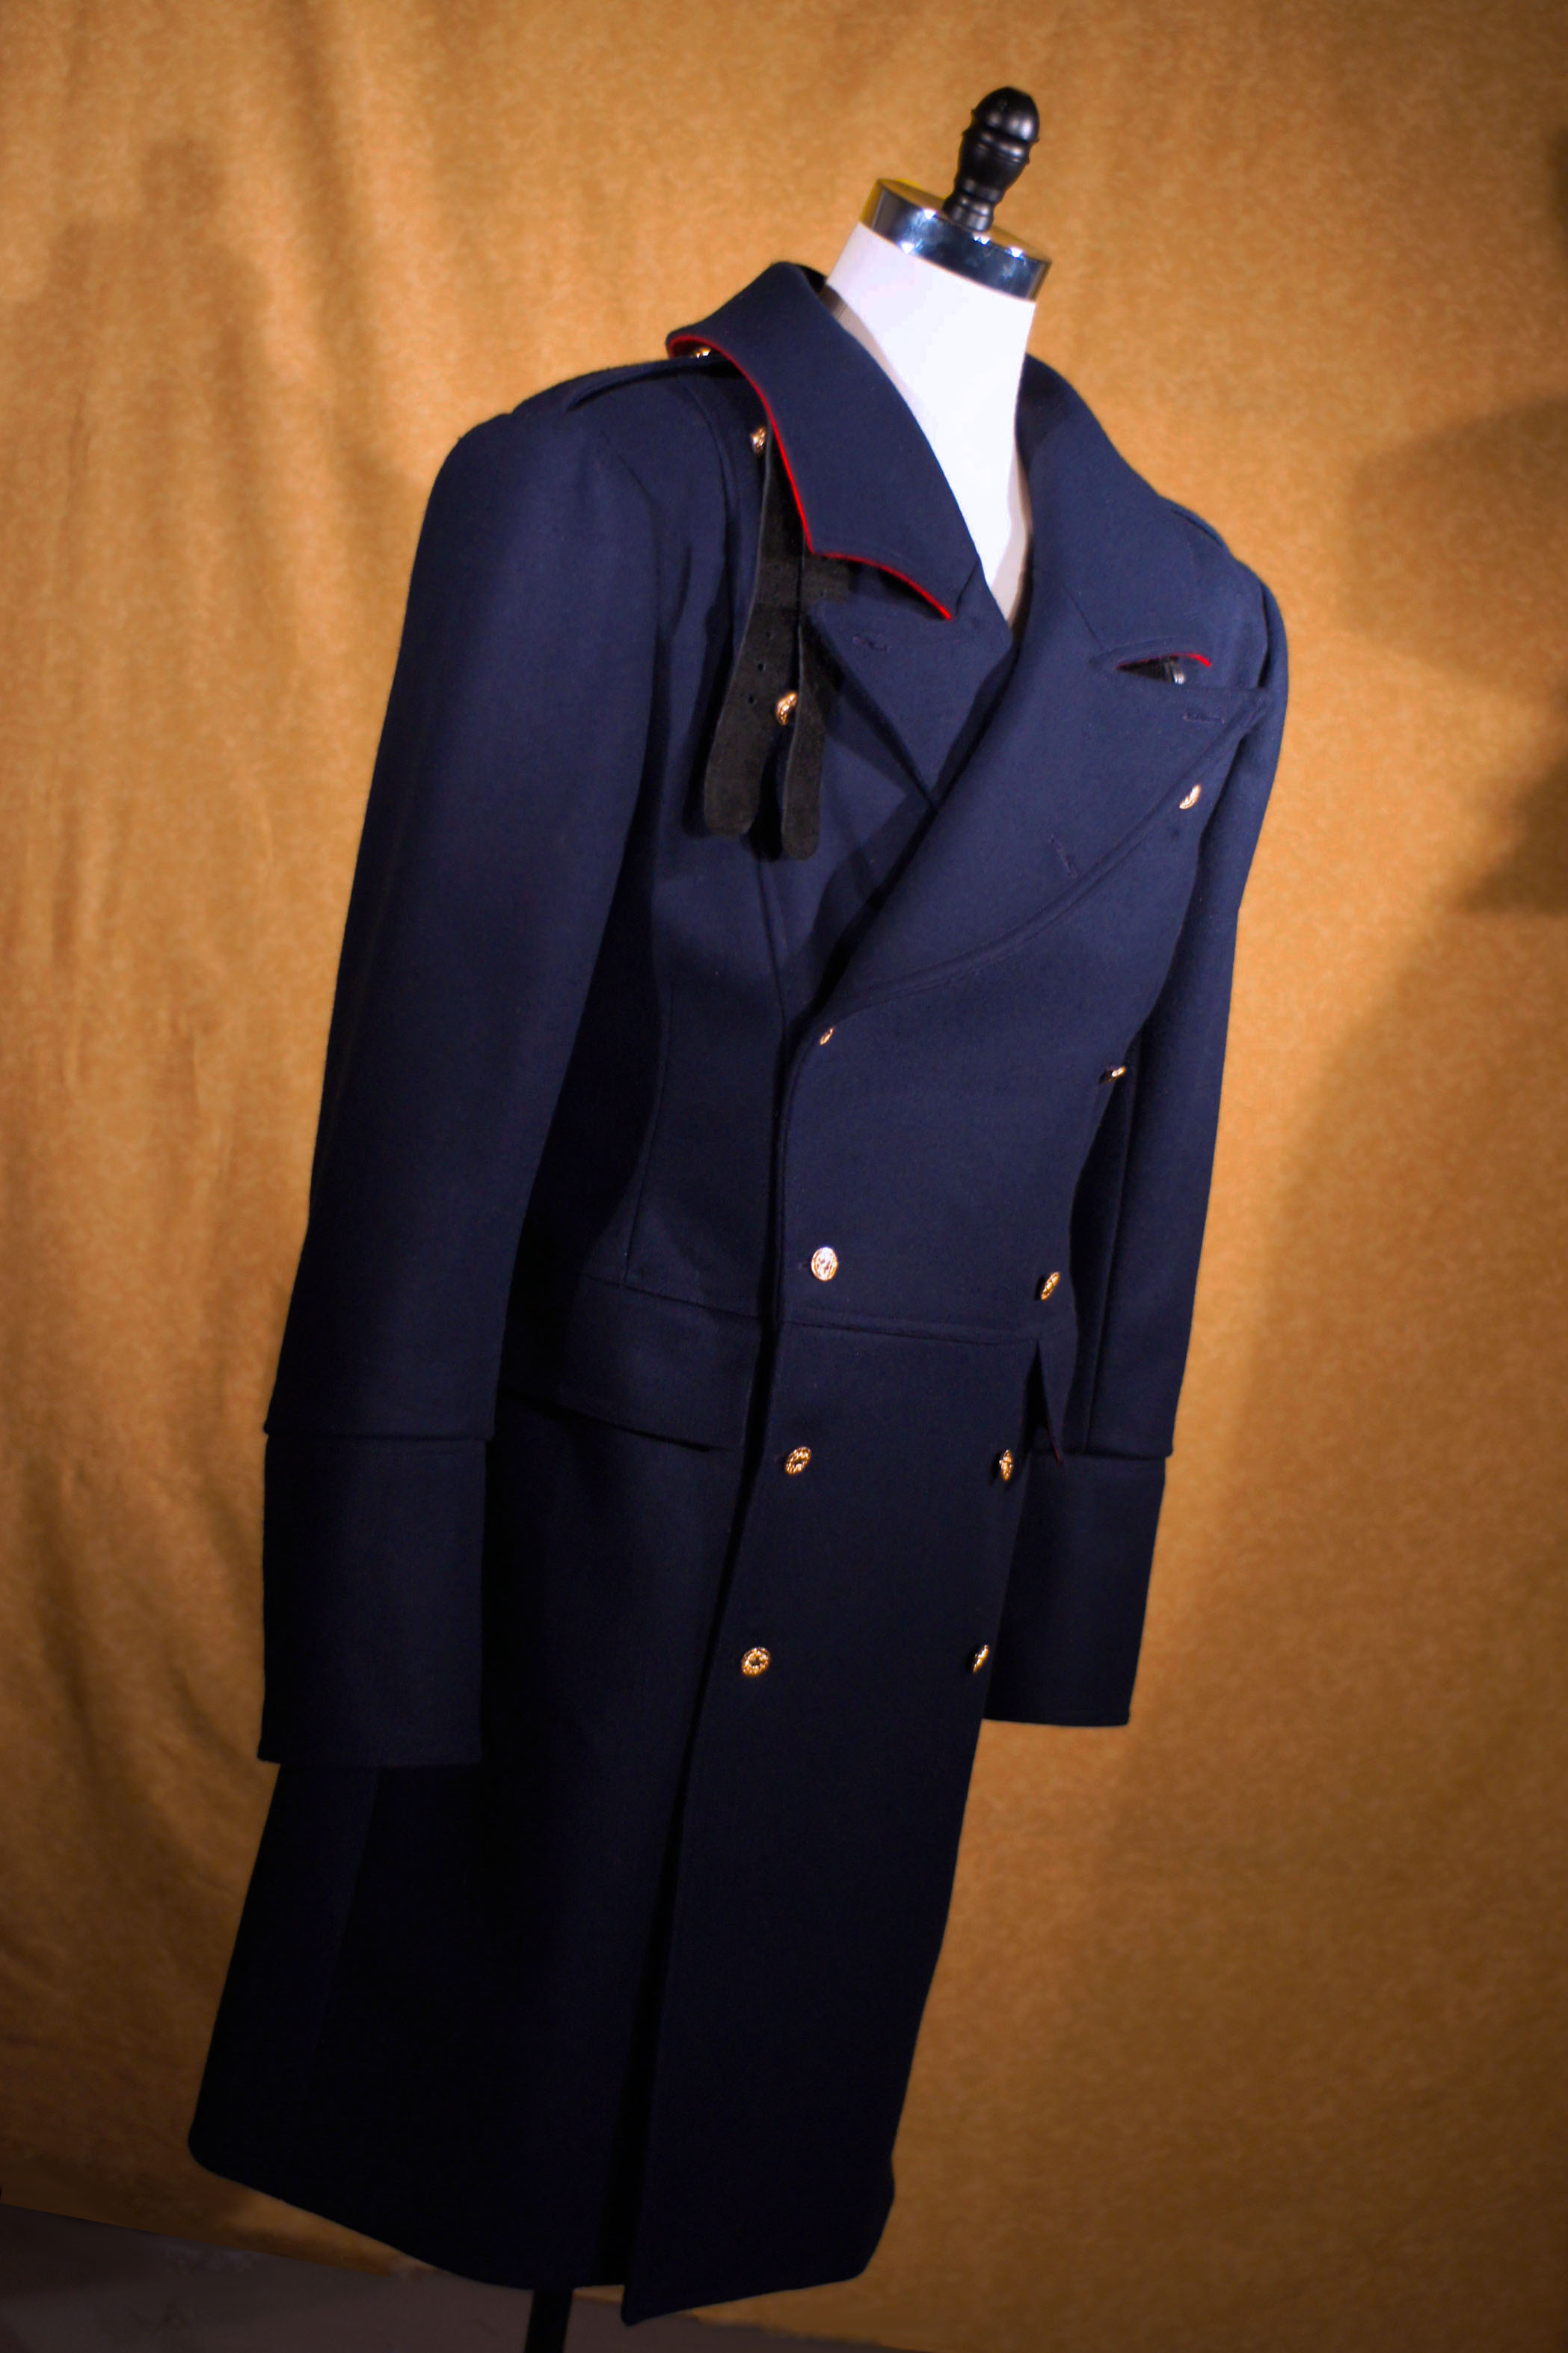 Coats and Jackets » Denver Bespoke: Custom Tailored Suits